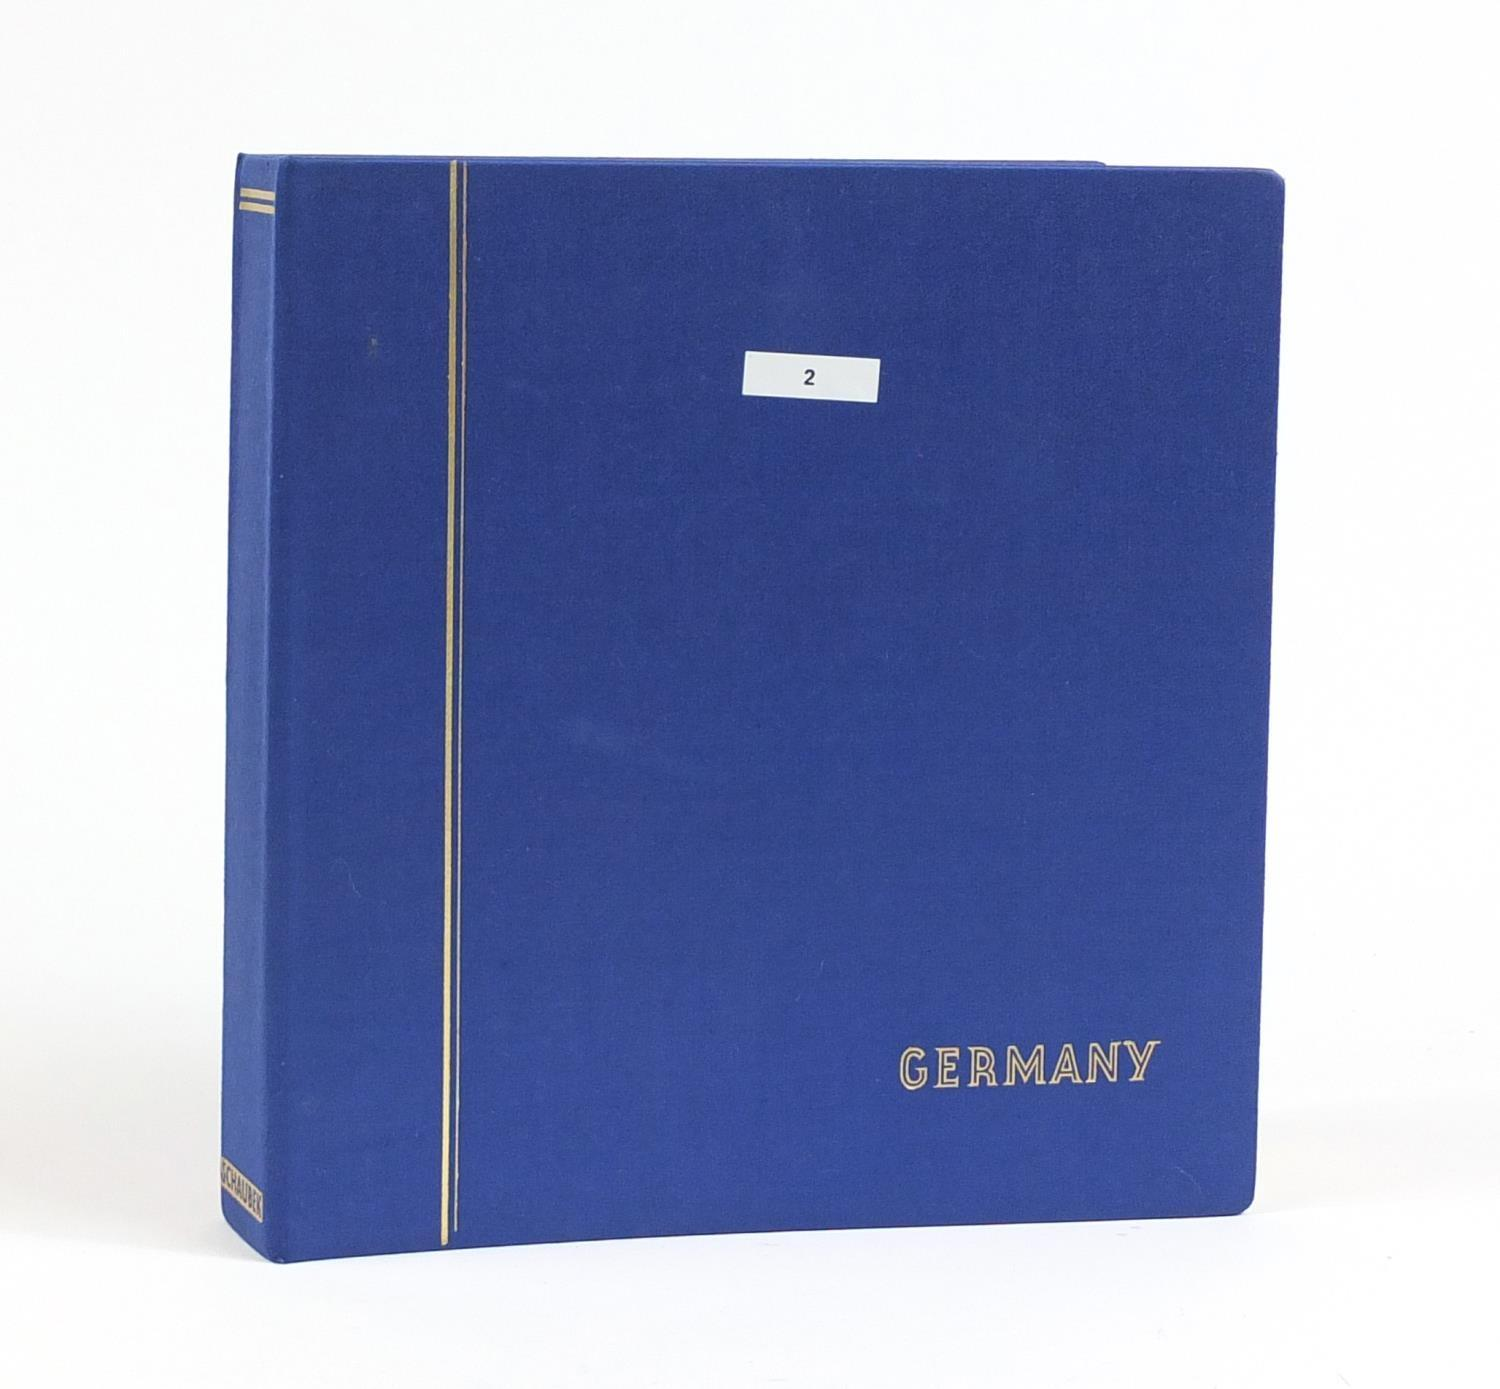 Lot 1044 - 19th century and later German stamps, arranged in an album : For Further Condition Reports Please